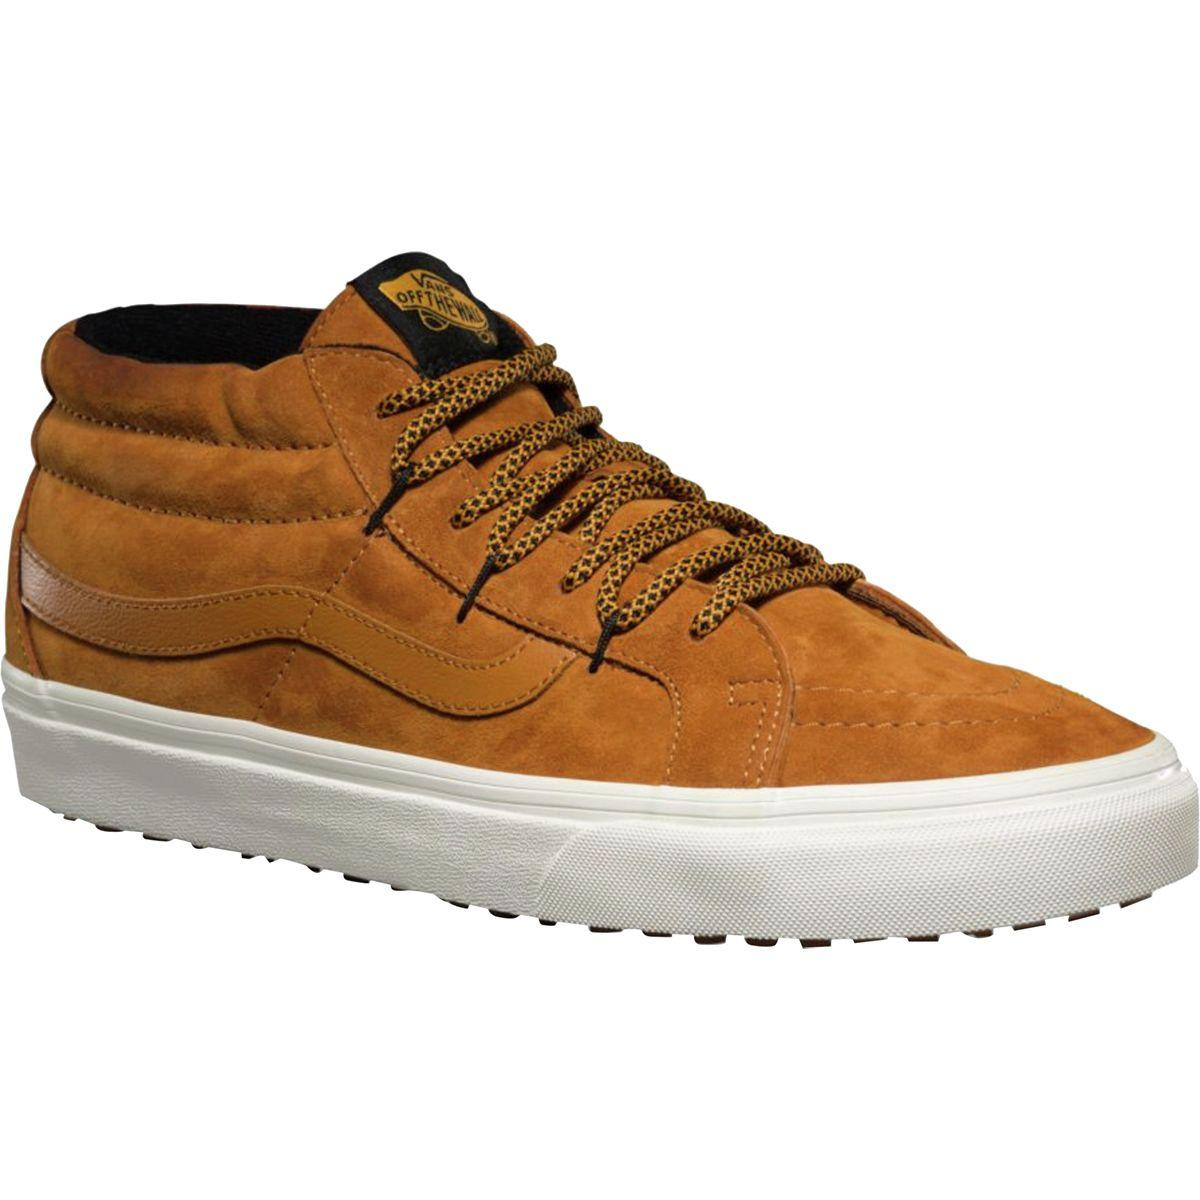 a54e9966f2 Lyst - Vans Sk8-mid Reissue Ghillie Mte Shoe in Brown for Men